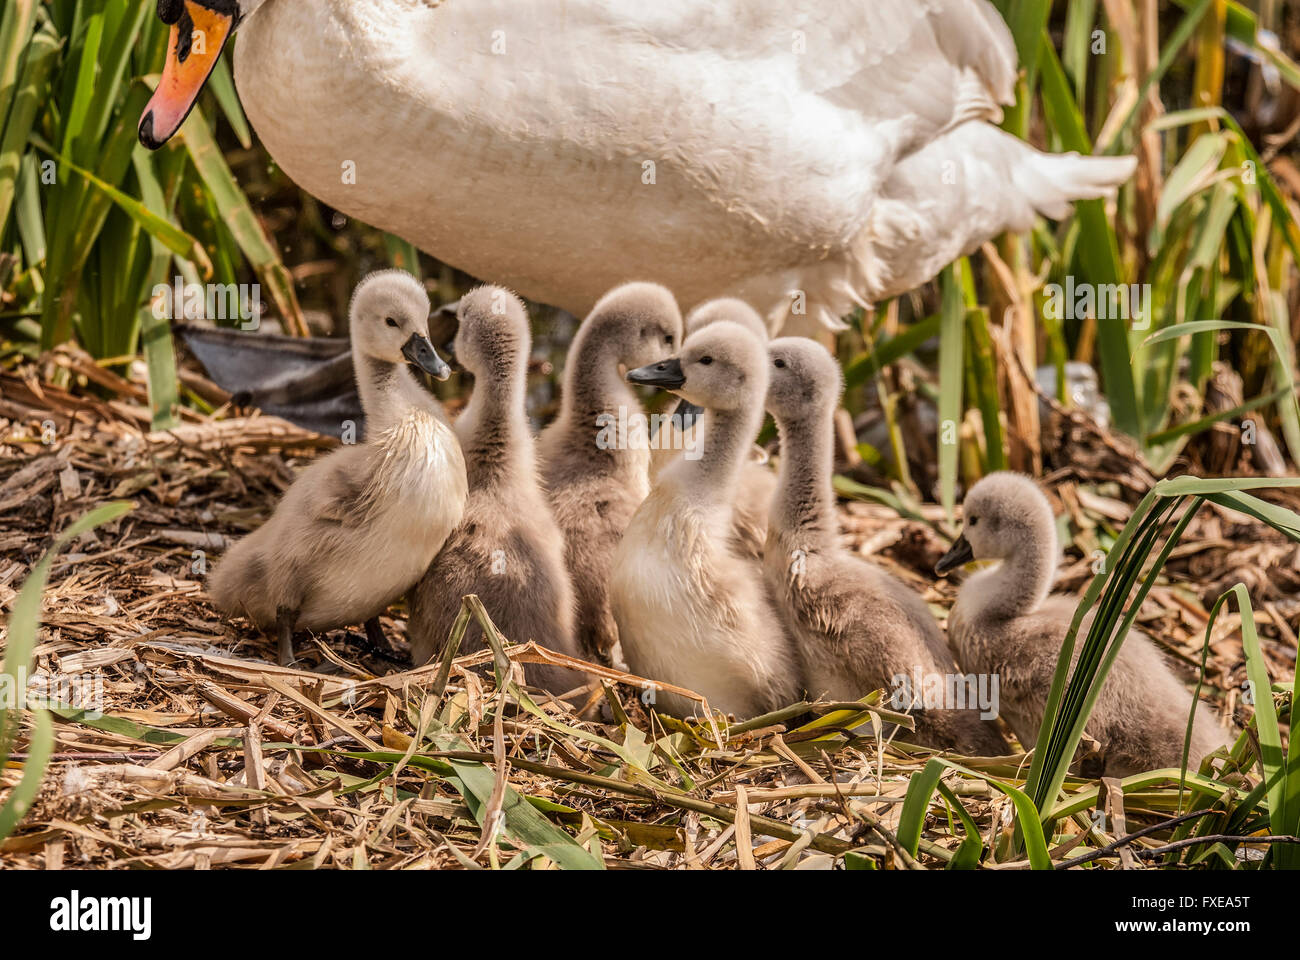 A family of cygnets. - Stock Image